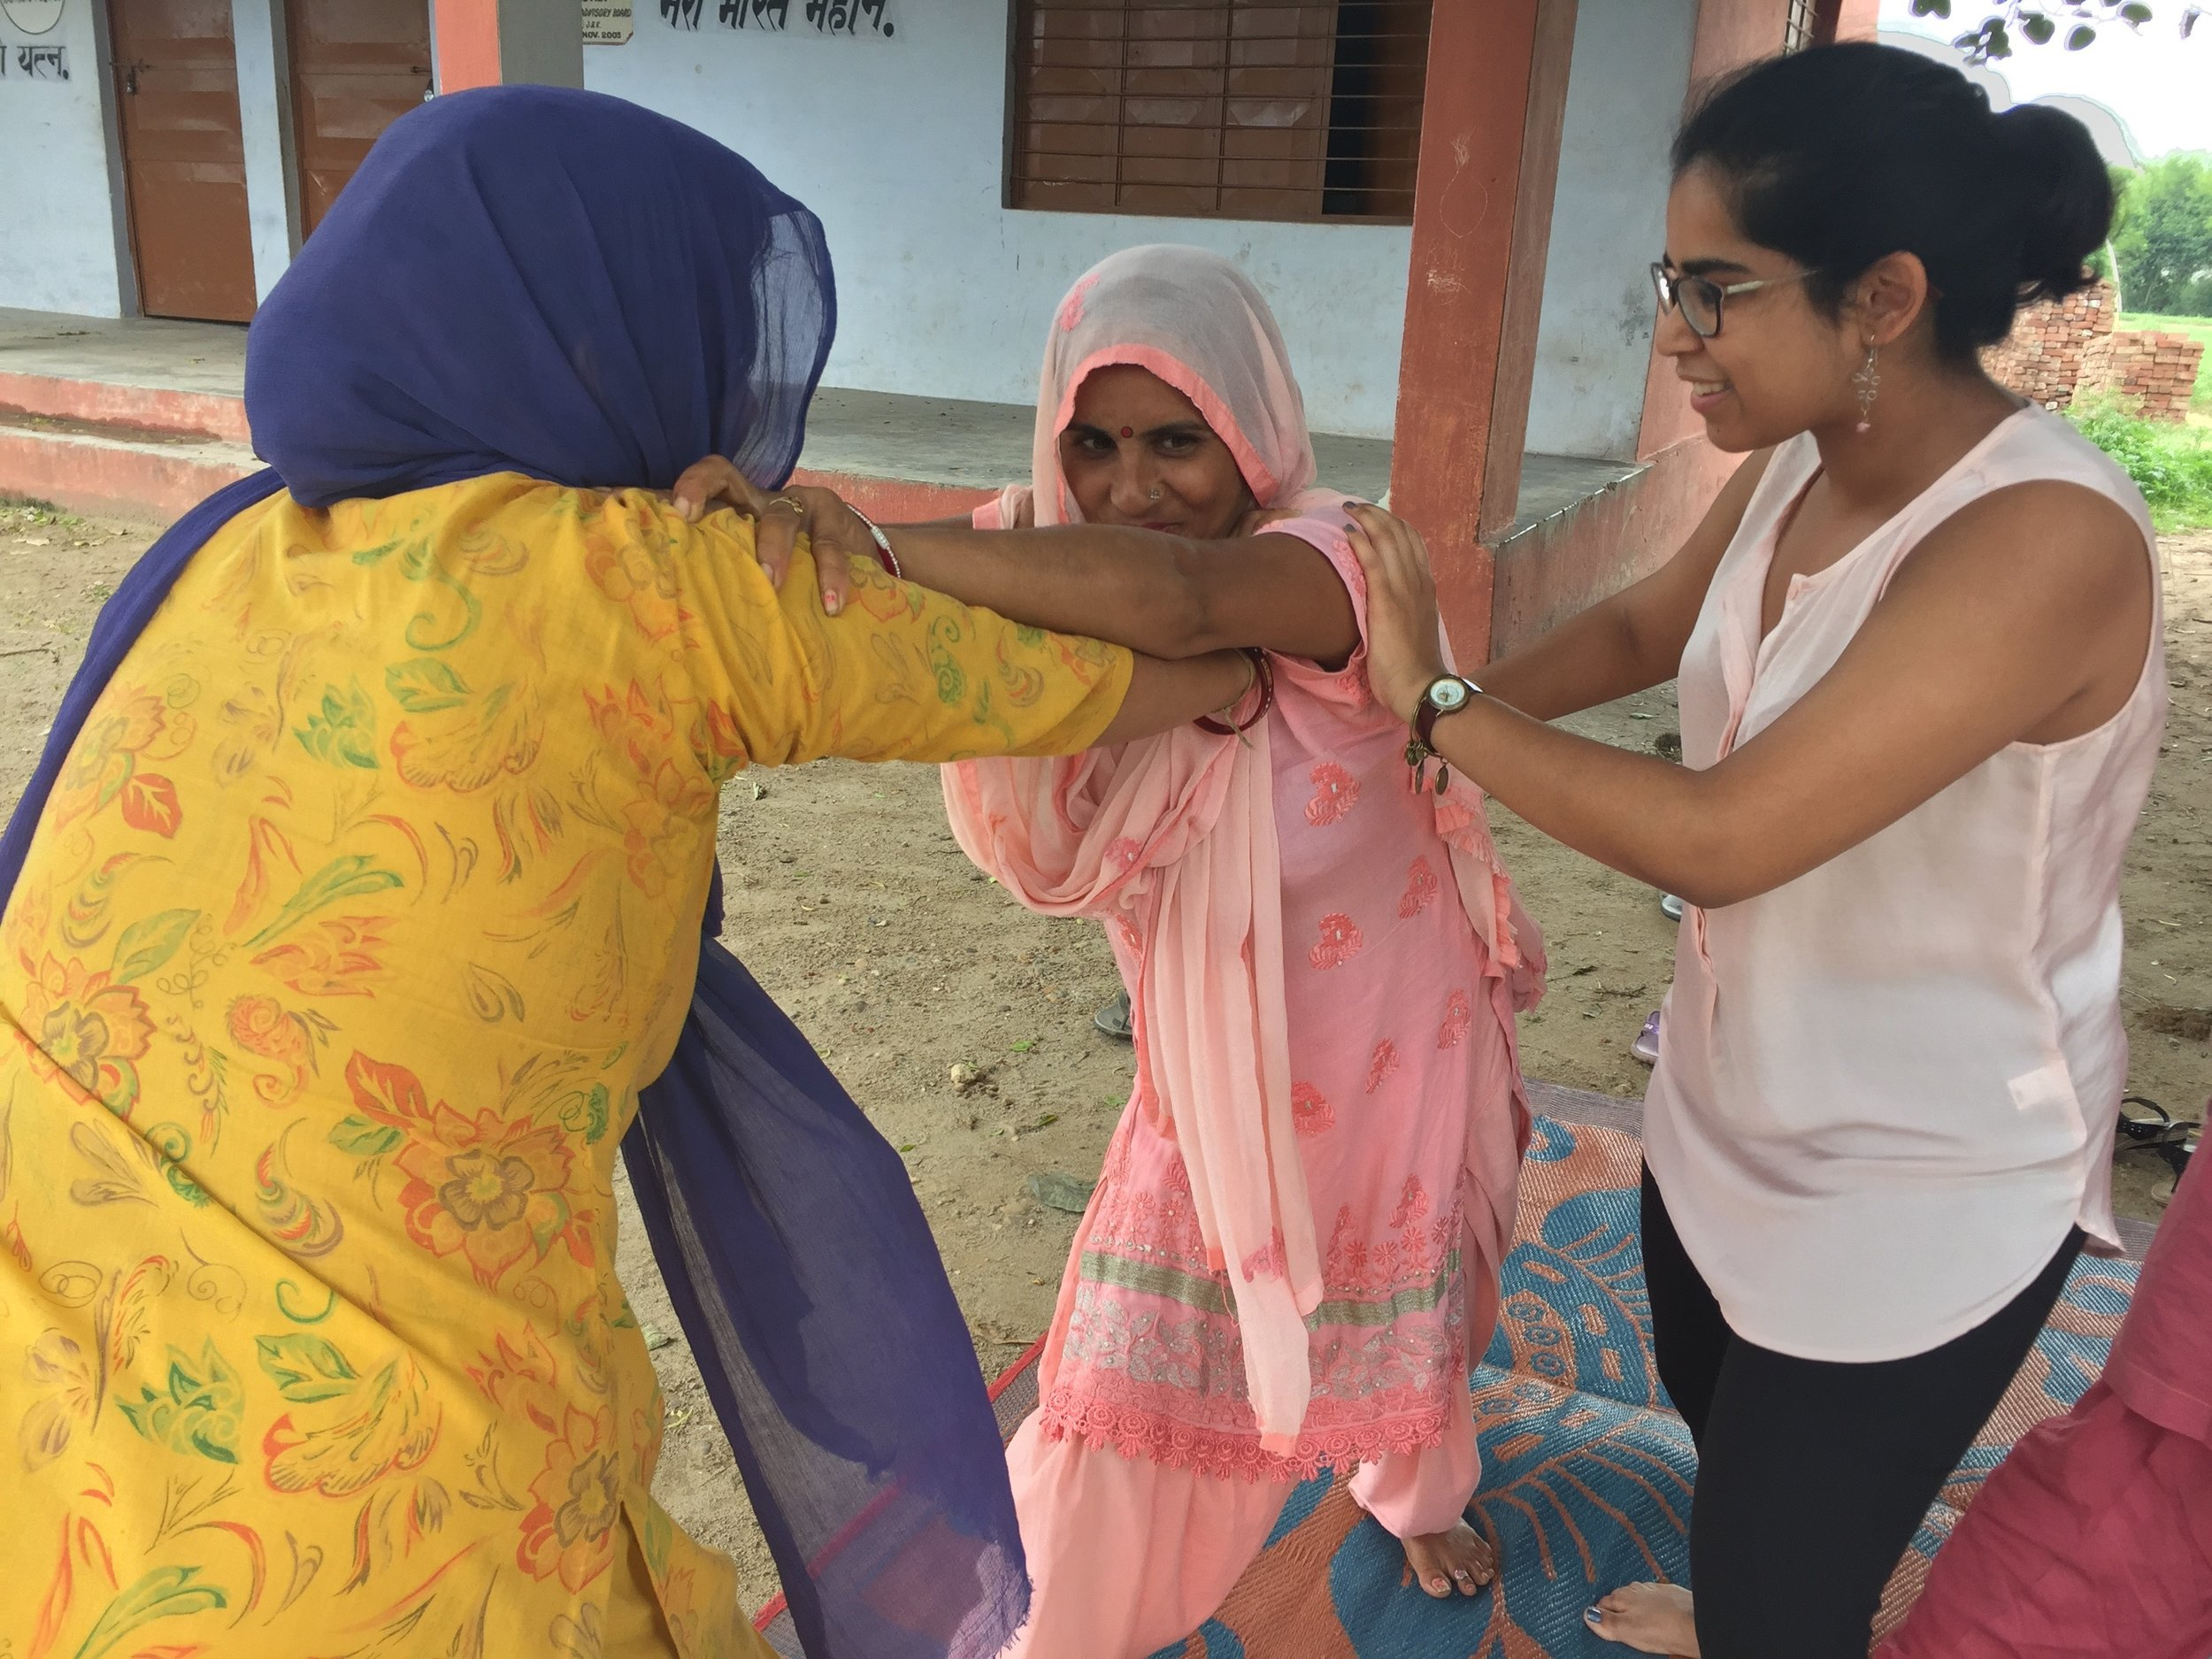 """""""Acting Out: Violence, Community, and Women's Theatre on the India-Pakistan Border"""" Presented at dis/locations: experimental geographies and methods at the margins. Mortara Center for International Studies, May 2017."""